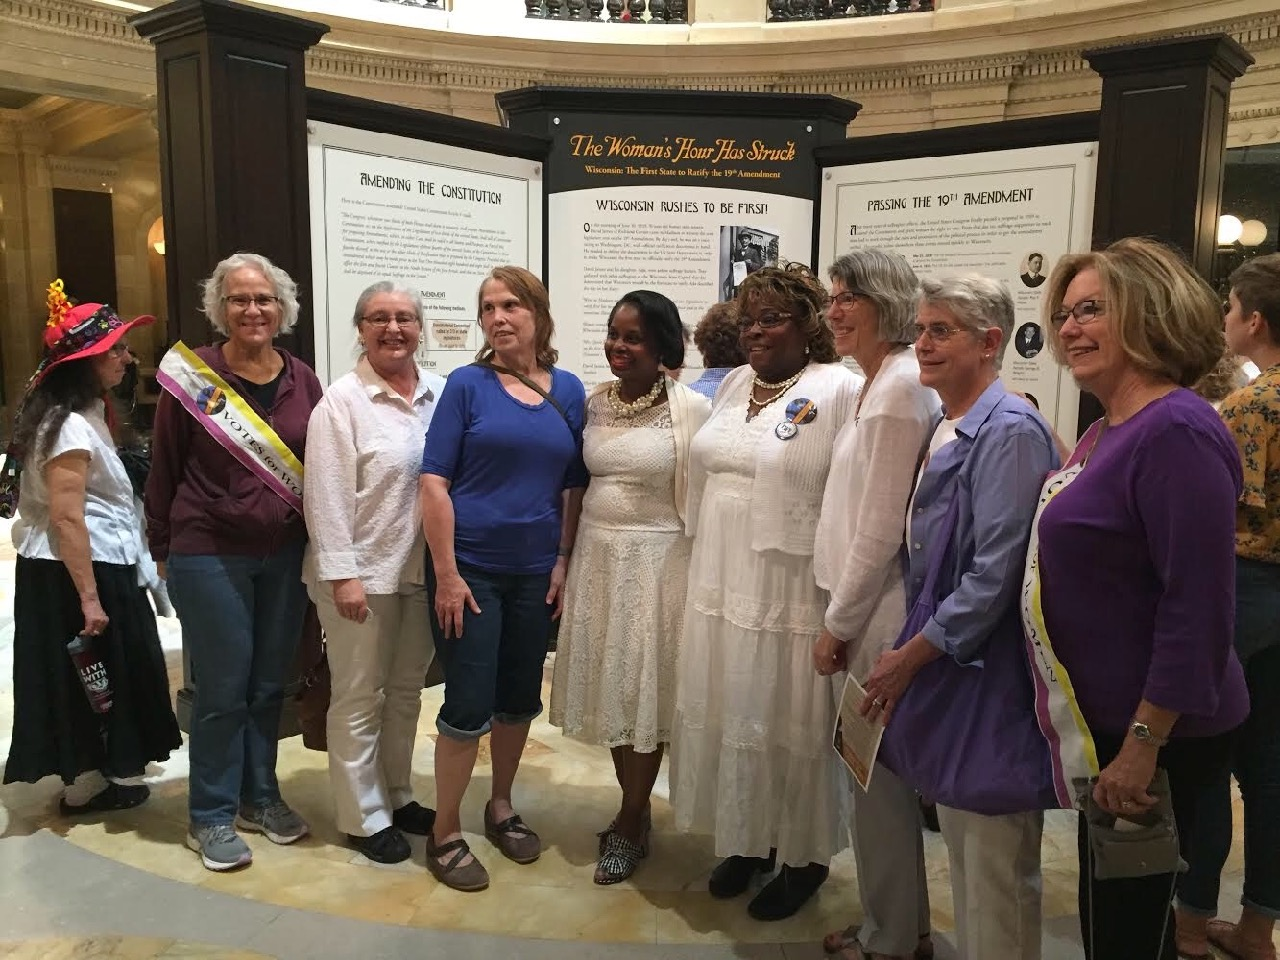 League and Delta Sigma Theta members gather in the rotunda to celebrate woman suffrage!